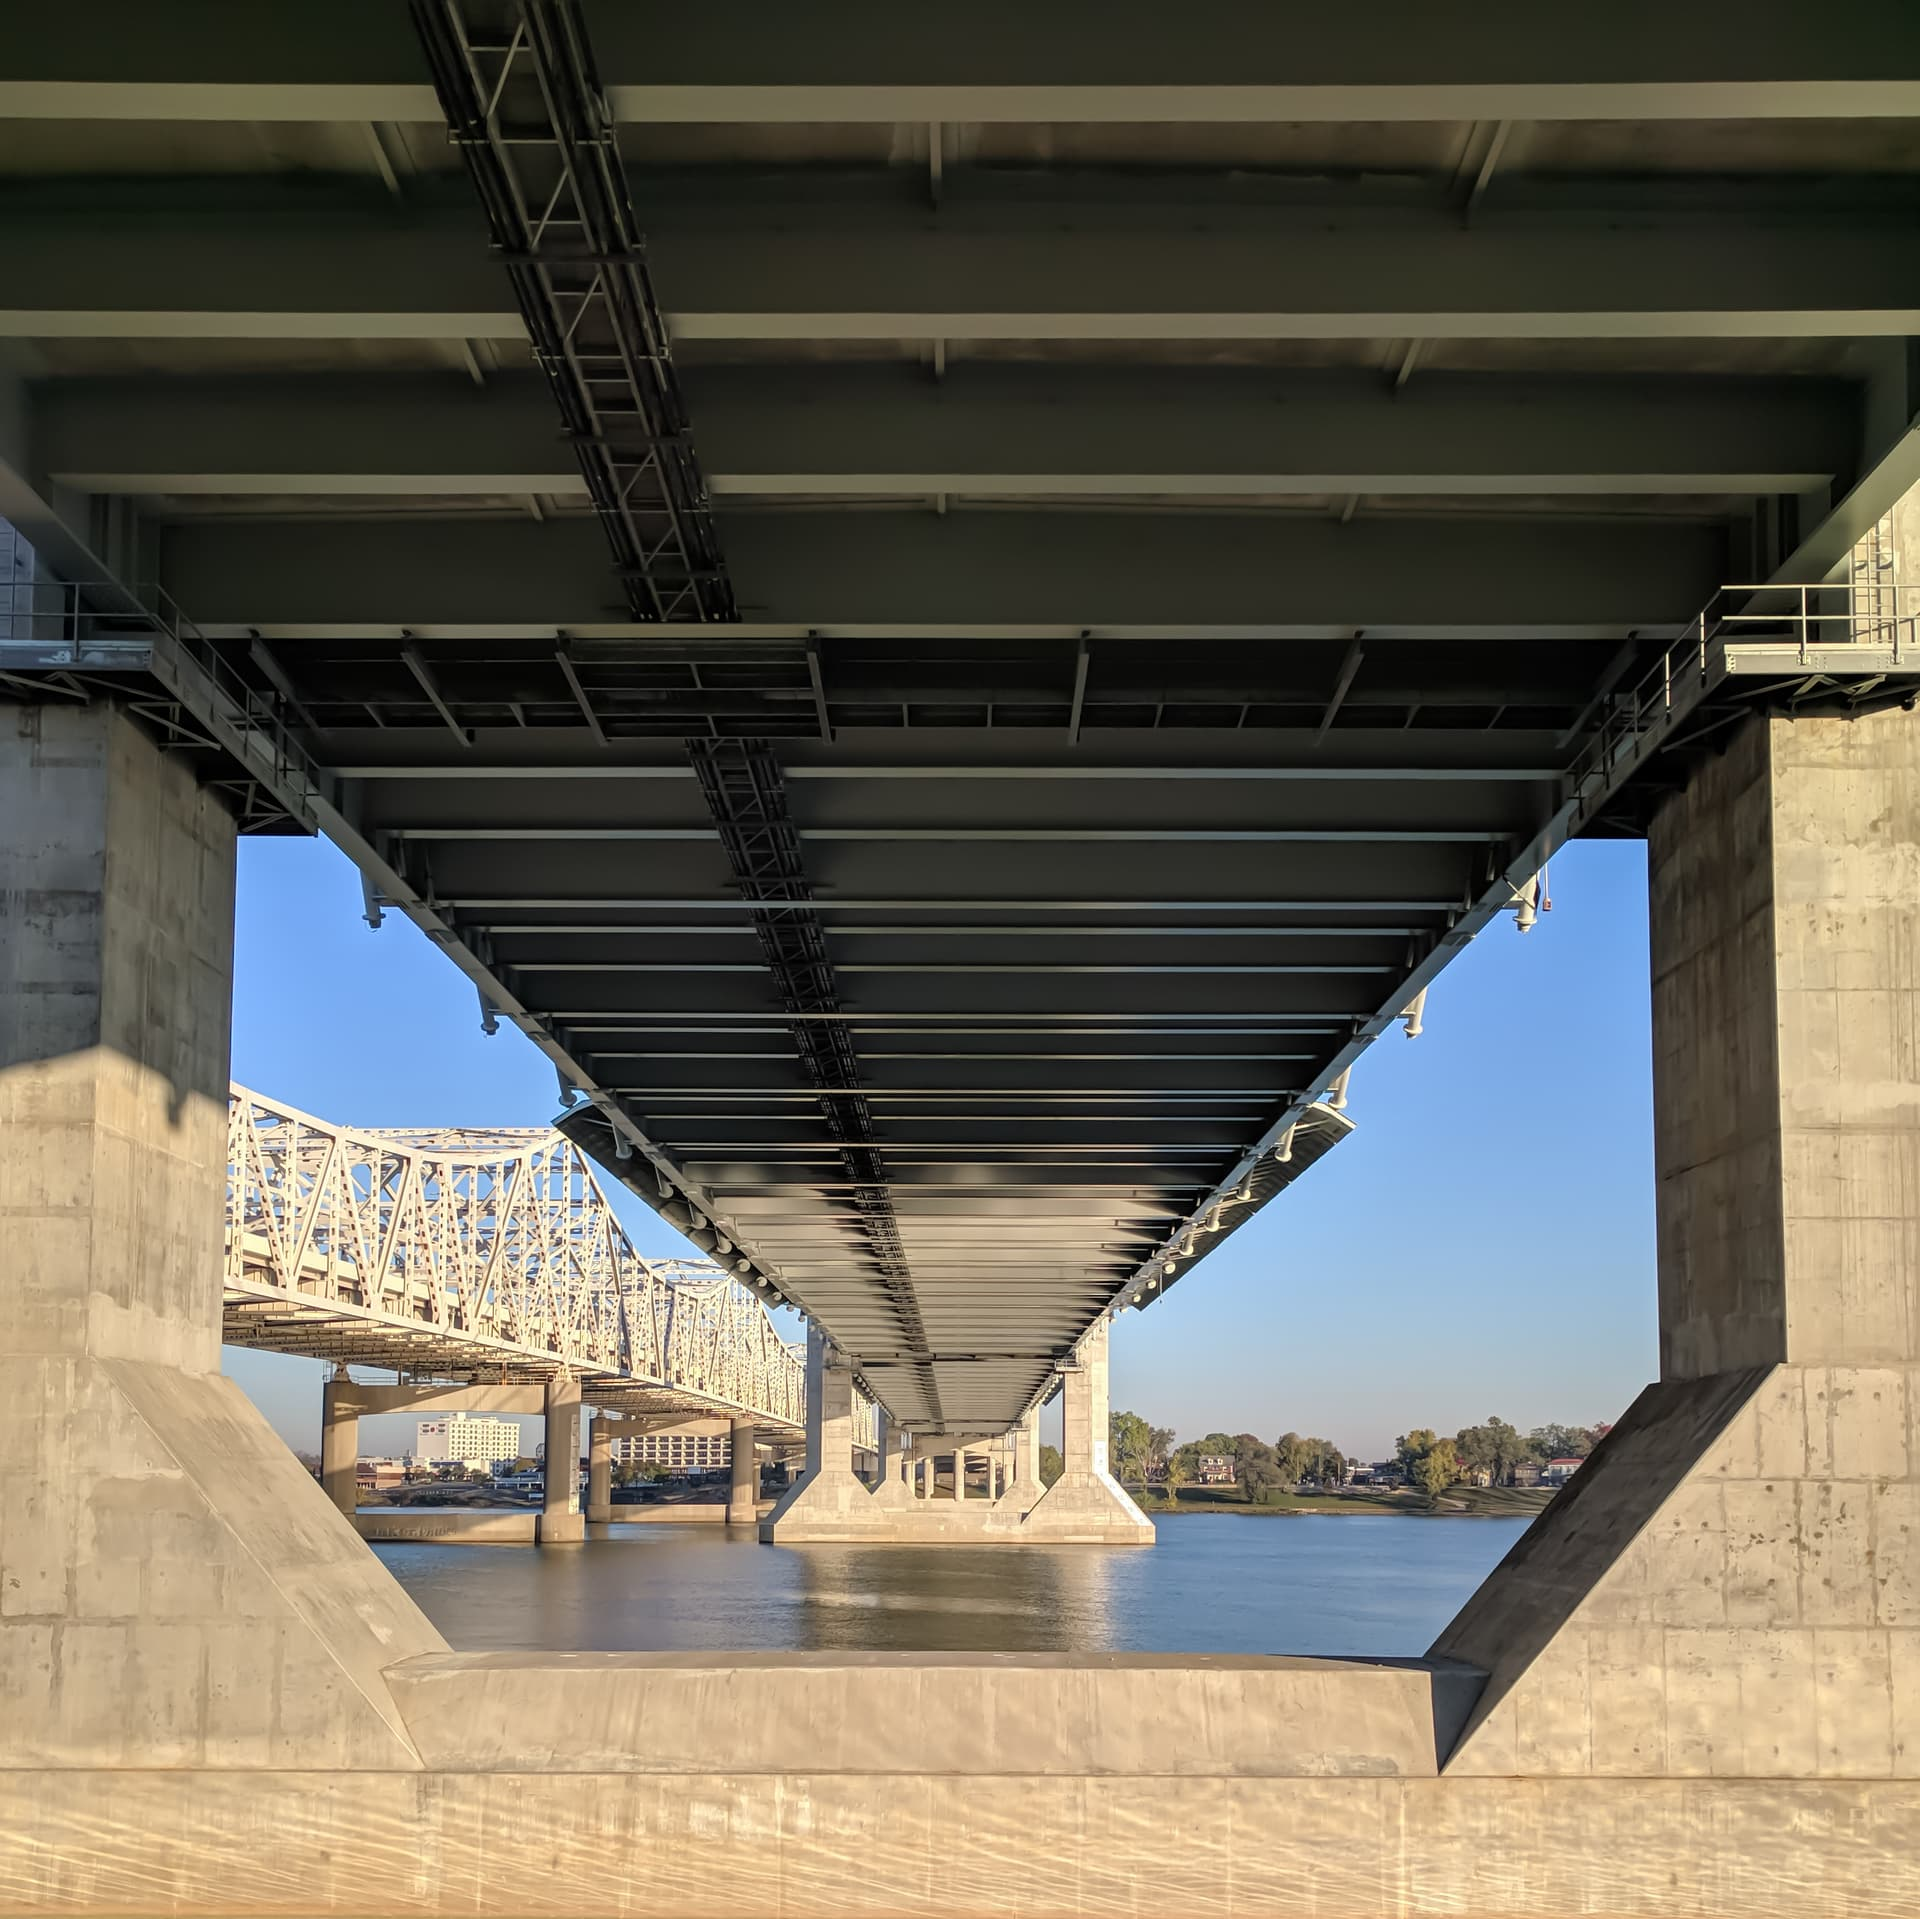 Looking towards Indiana across the Ohio River from underneath a bridge. The shot is framed by the bridge's concrete pylons, which regularly recede into the distance.